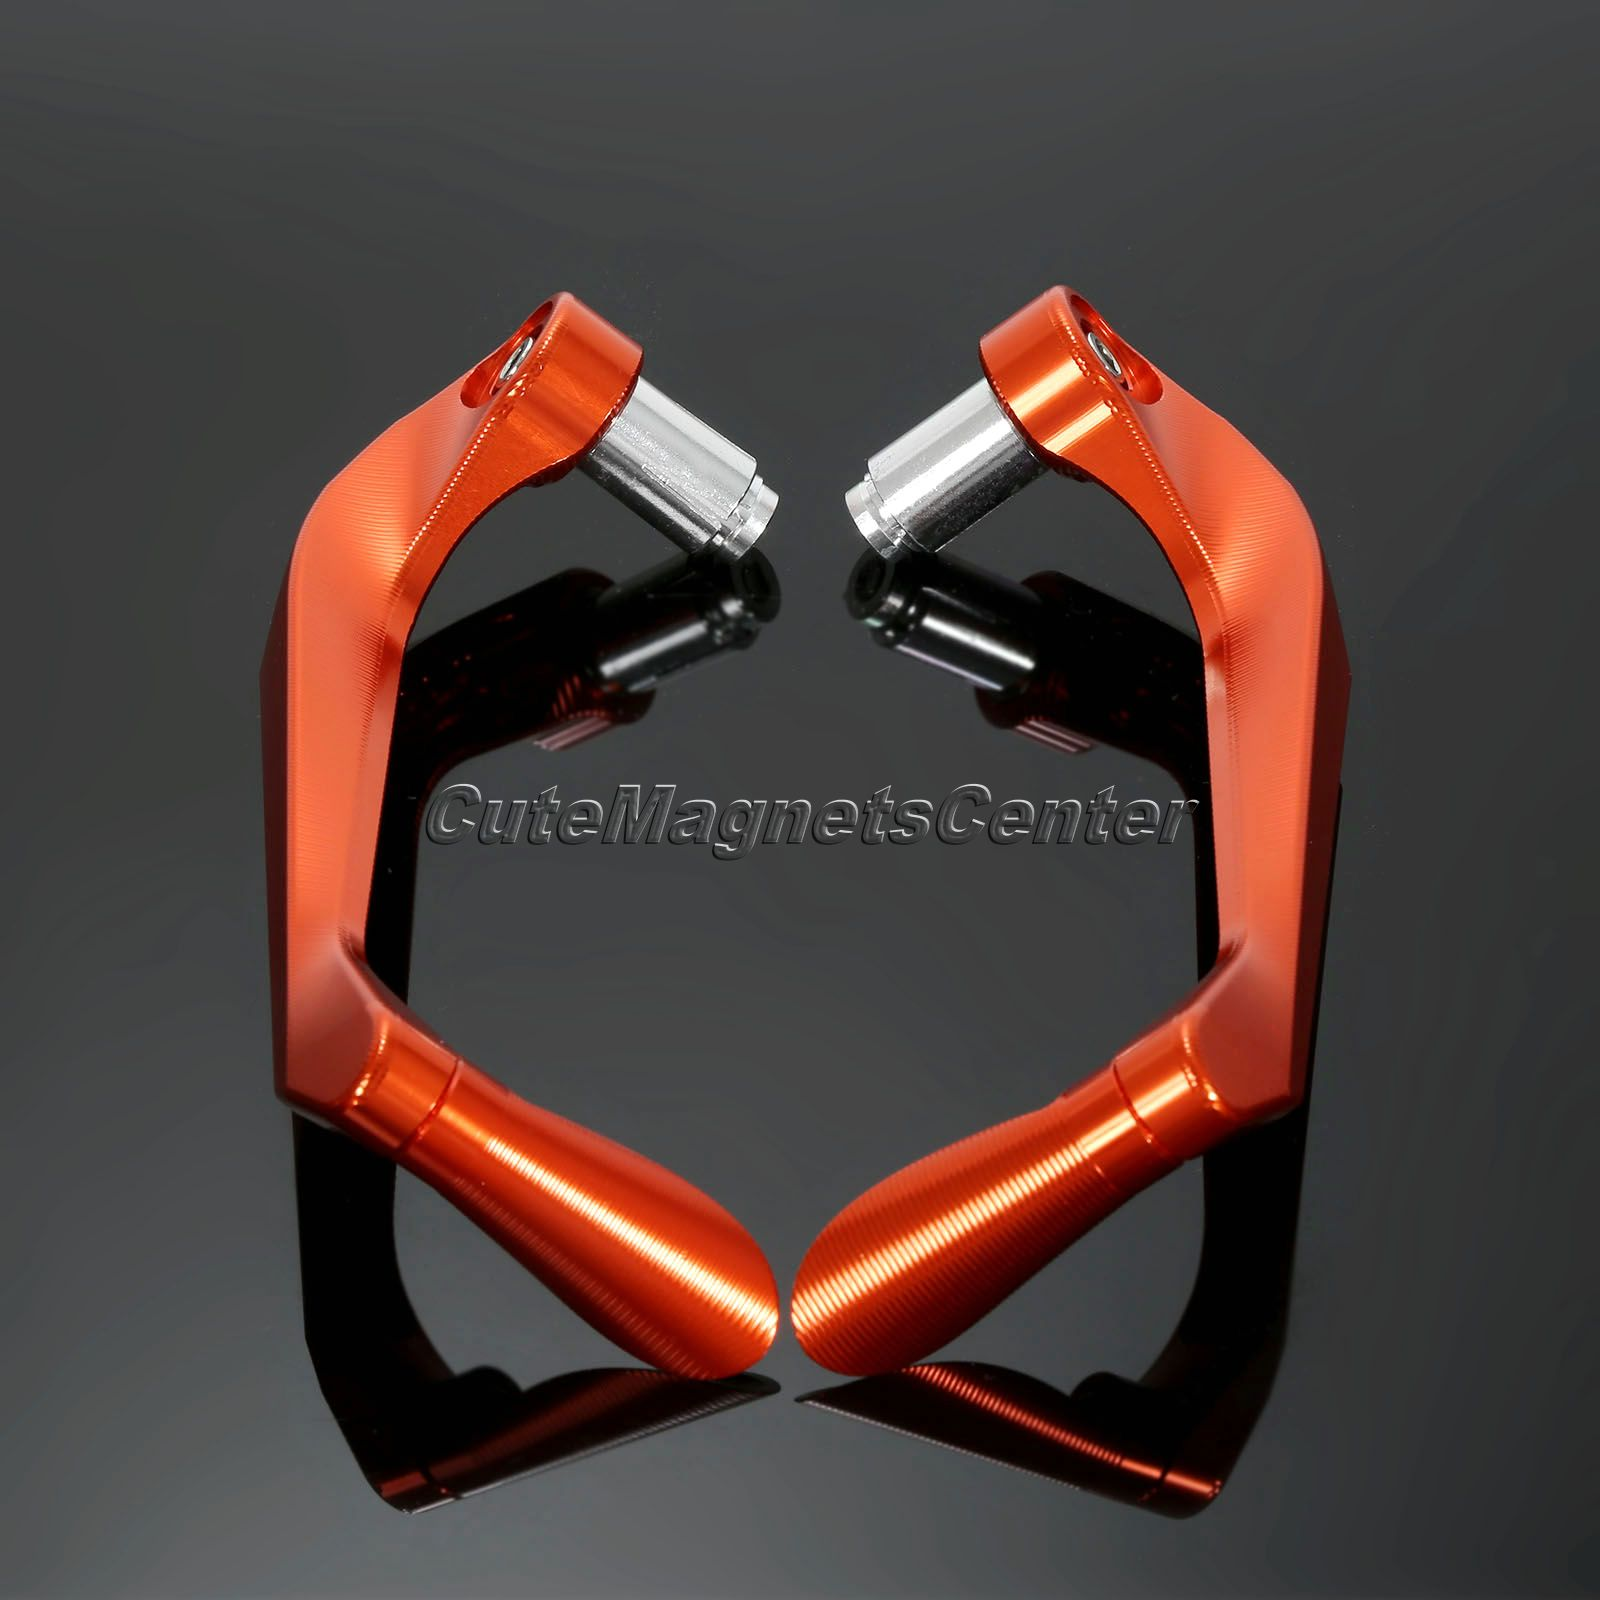 Universal 7/8 22mm CNC Motorcycle 3D Brake Clutch Levers Protect Guards for Honda Suzuki Yamaha R3 R25 YZF R1 YZF R6 Handle Bar<br><br>Aliexpress